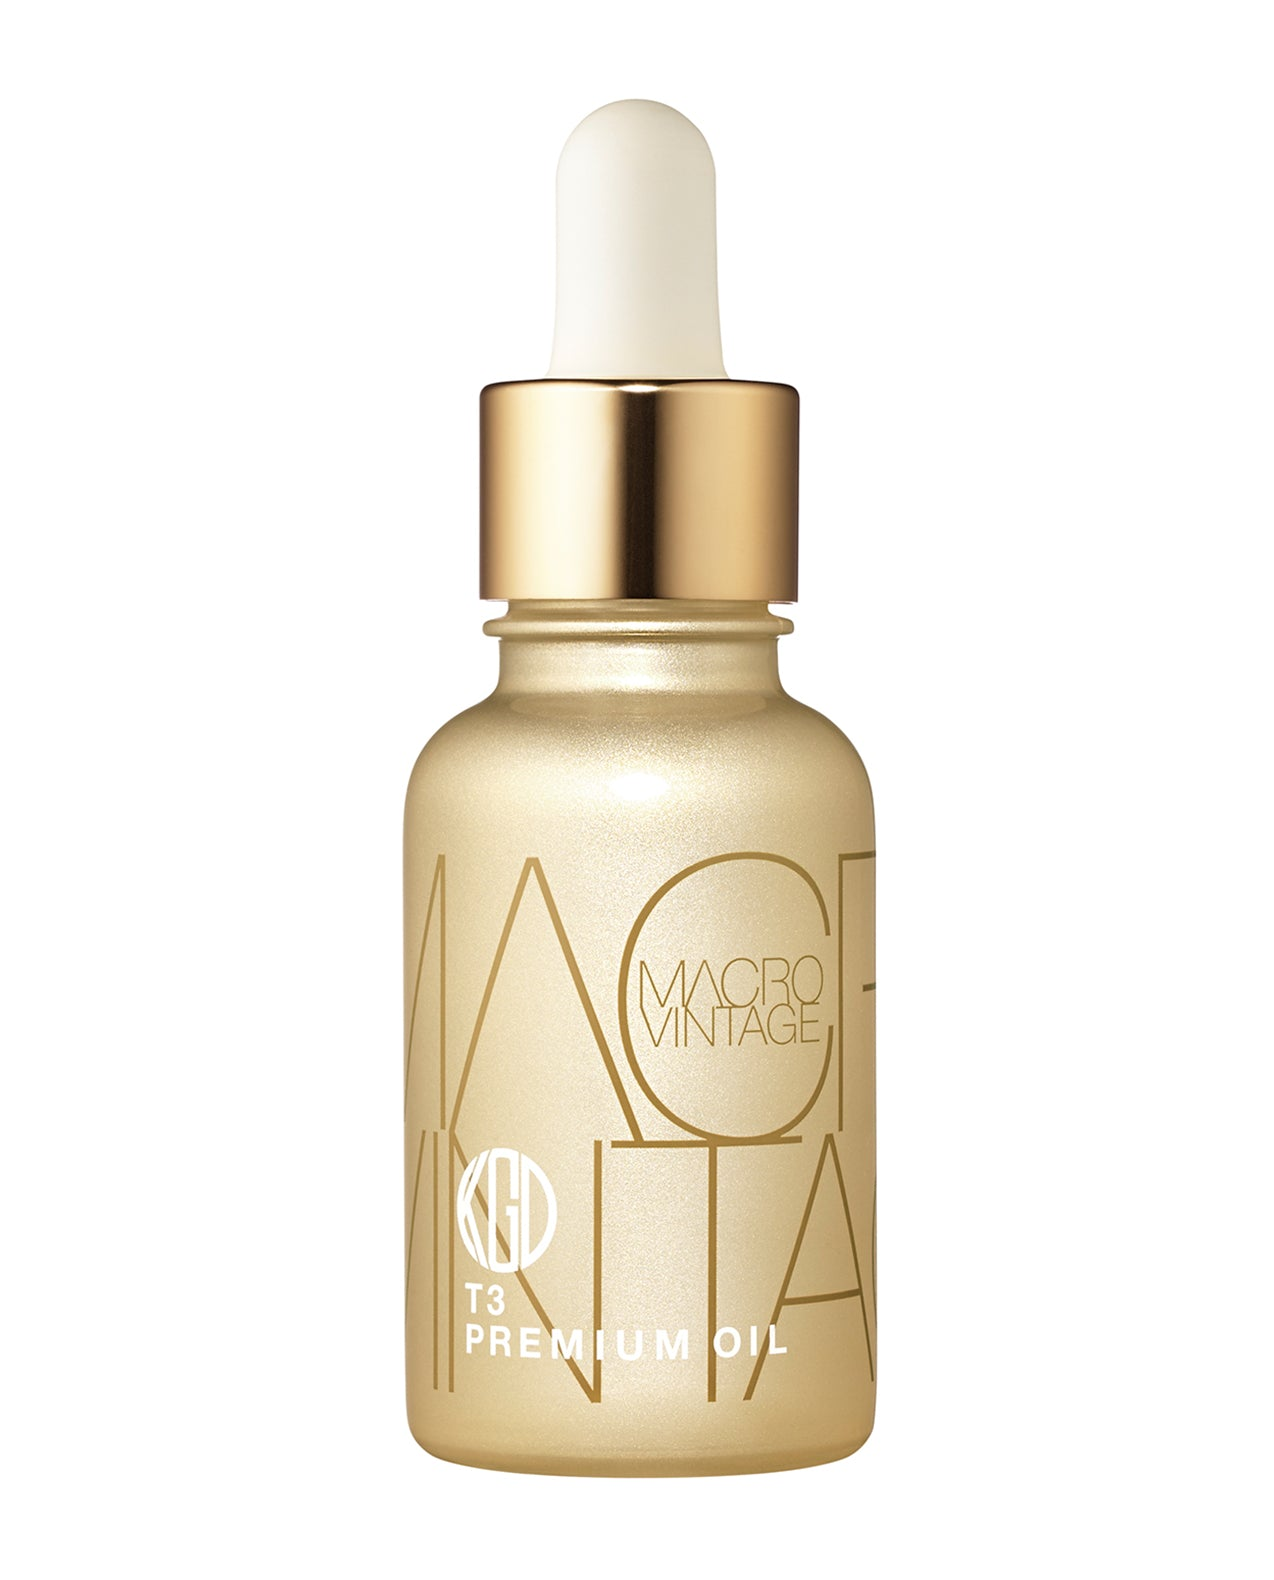 Restore a soft, supple, healthy glow. This multi-use beauty oil instantly gives skin a dewy, healthy glow.